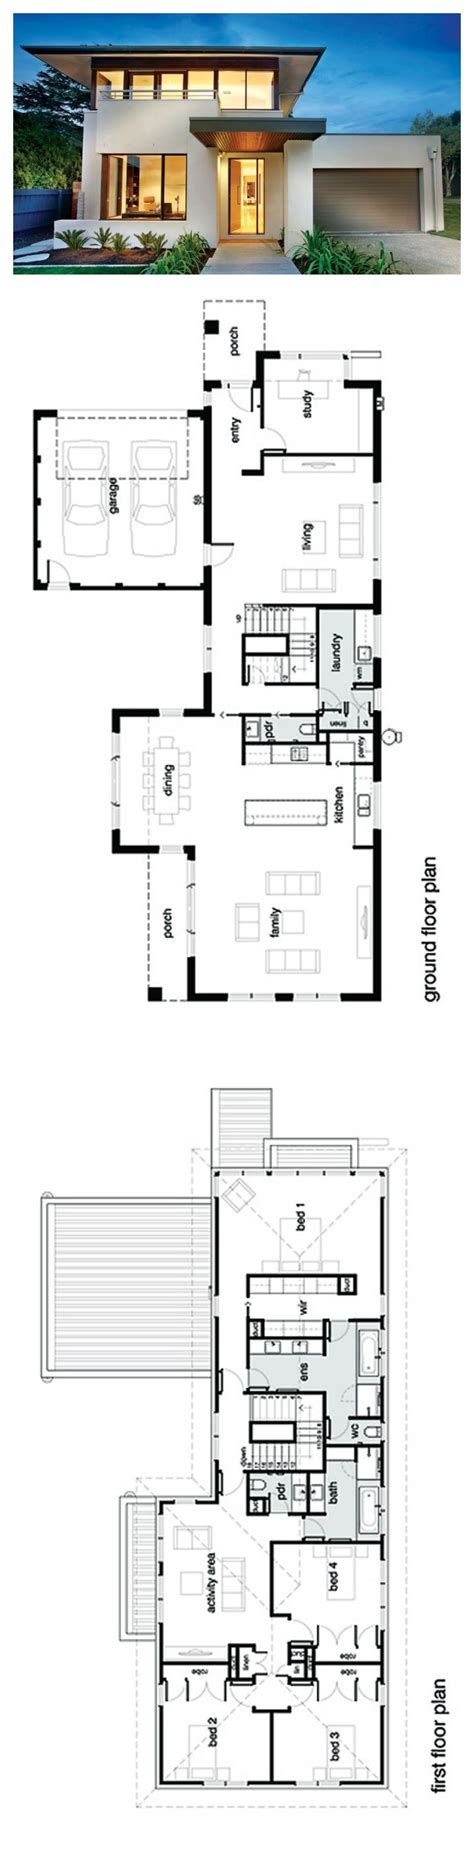 floor plan modern family house the 25 best ideas about modern house plans on pinterest modern house floor plans modern